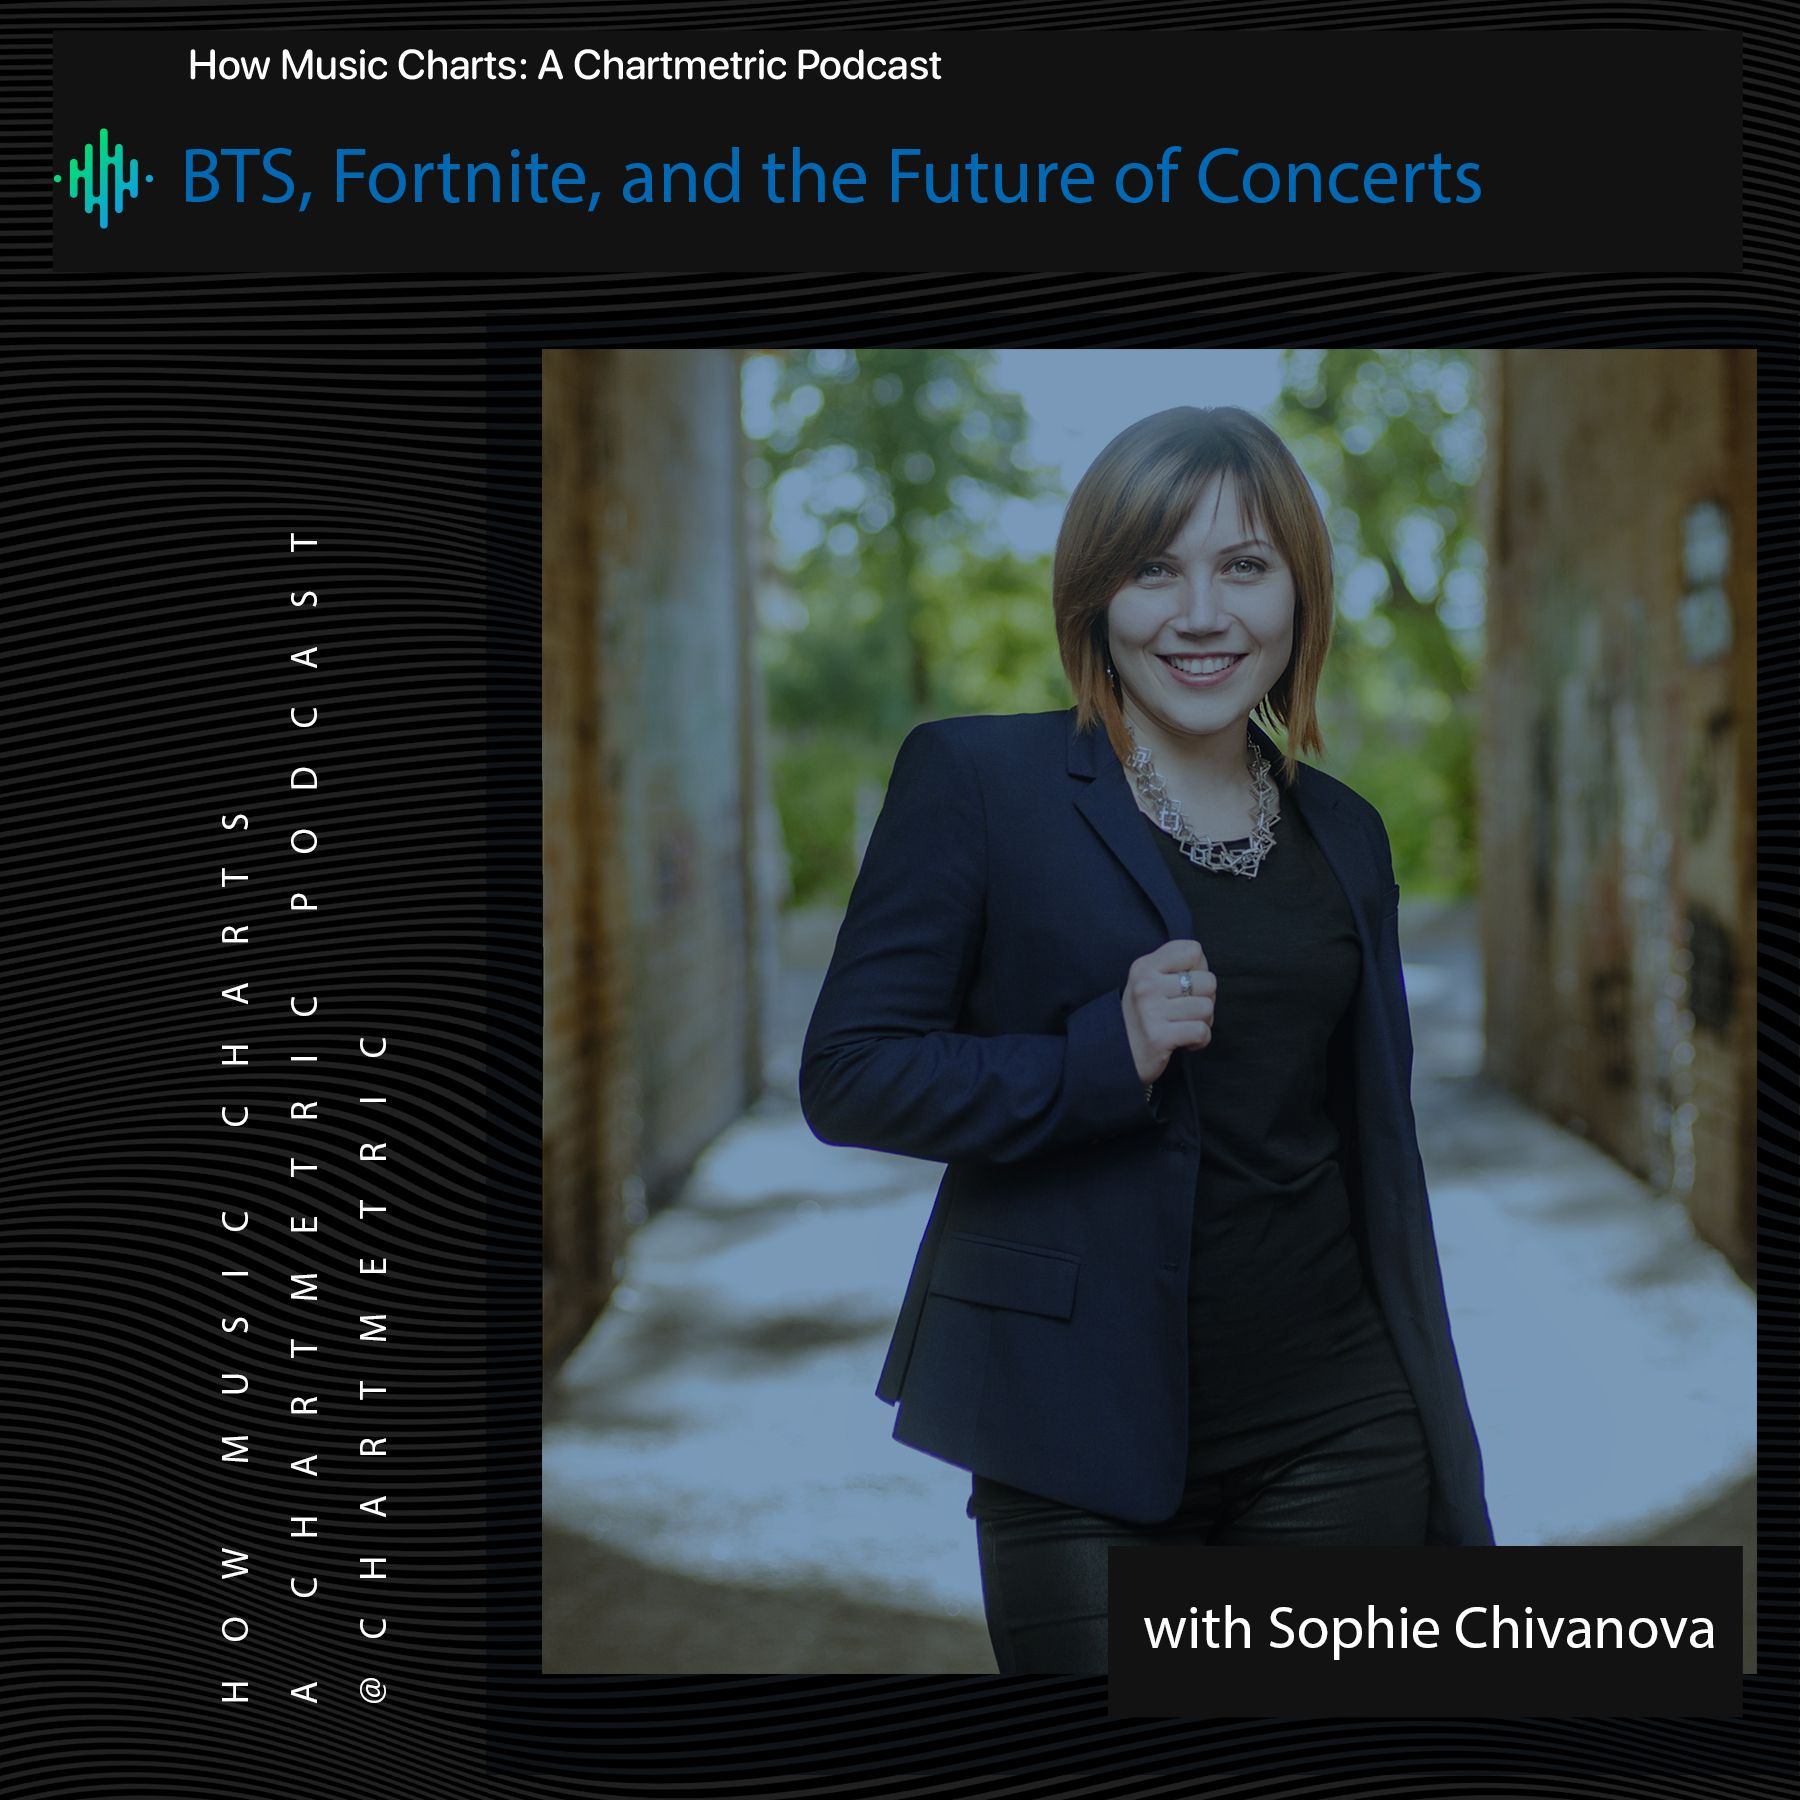 BTS, Fortnite, and the Future of Concerts With Sophie Chivanova